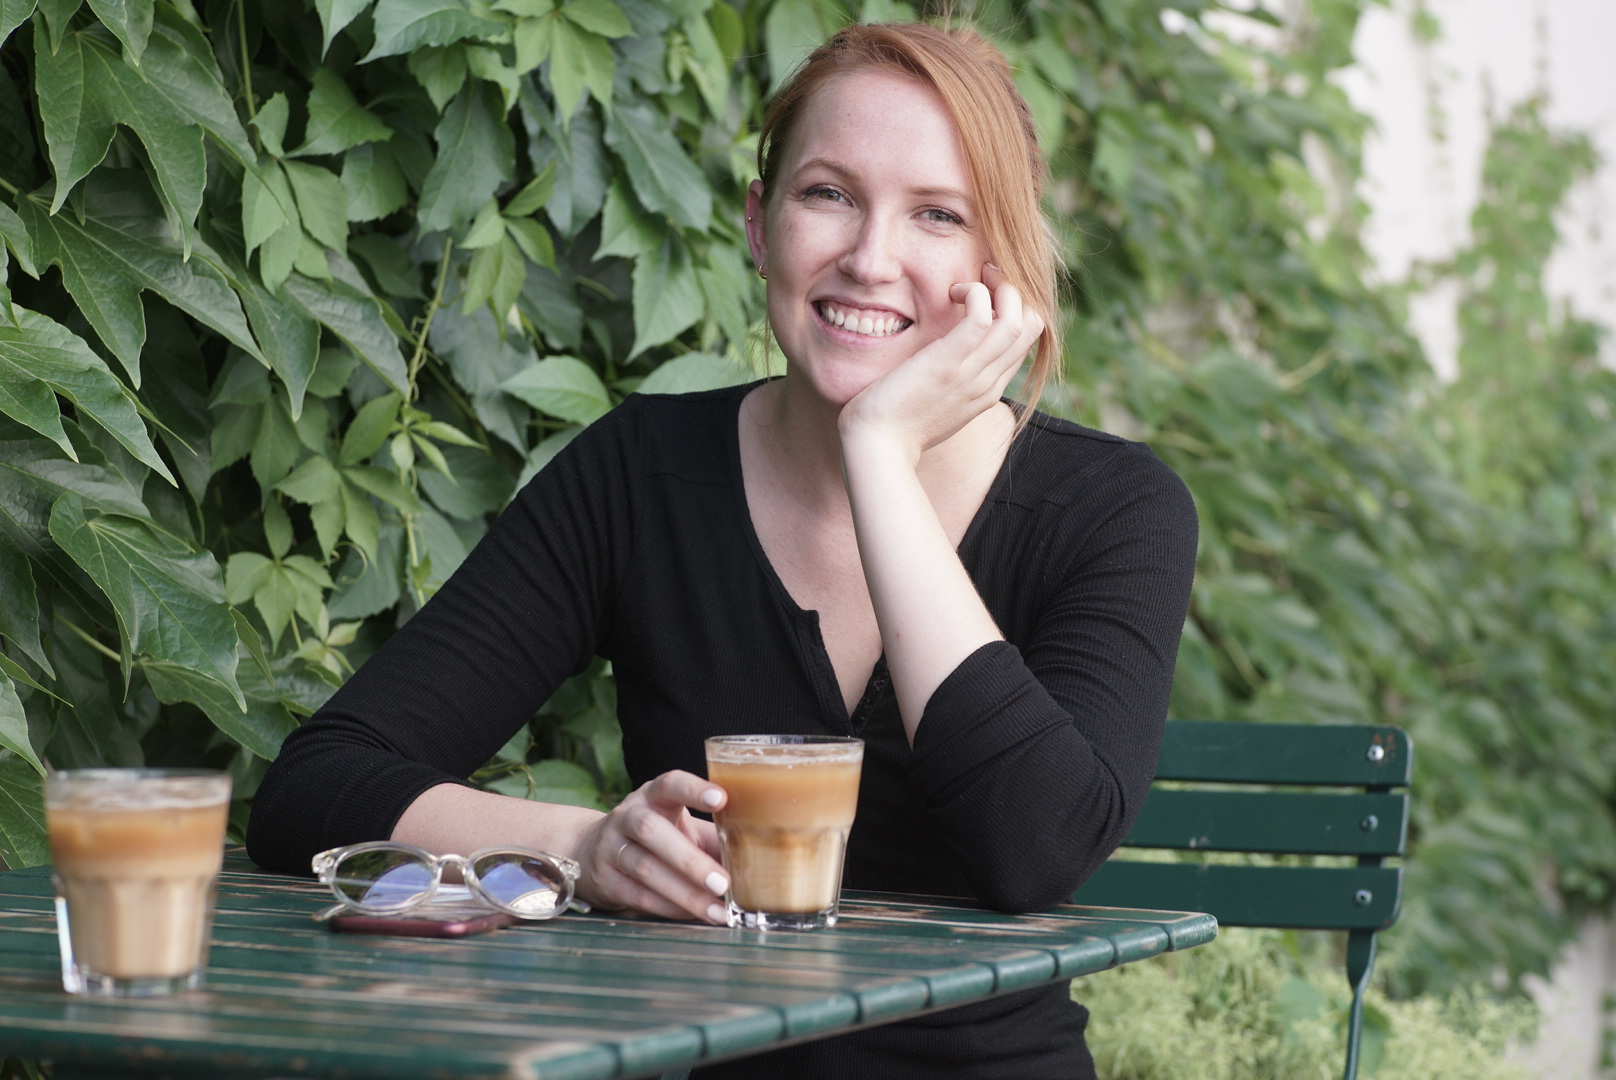 Meet our Vienna Food Tours Guide Ella